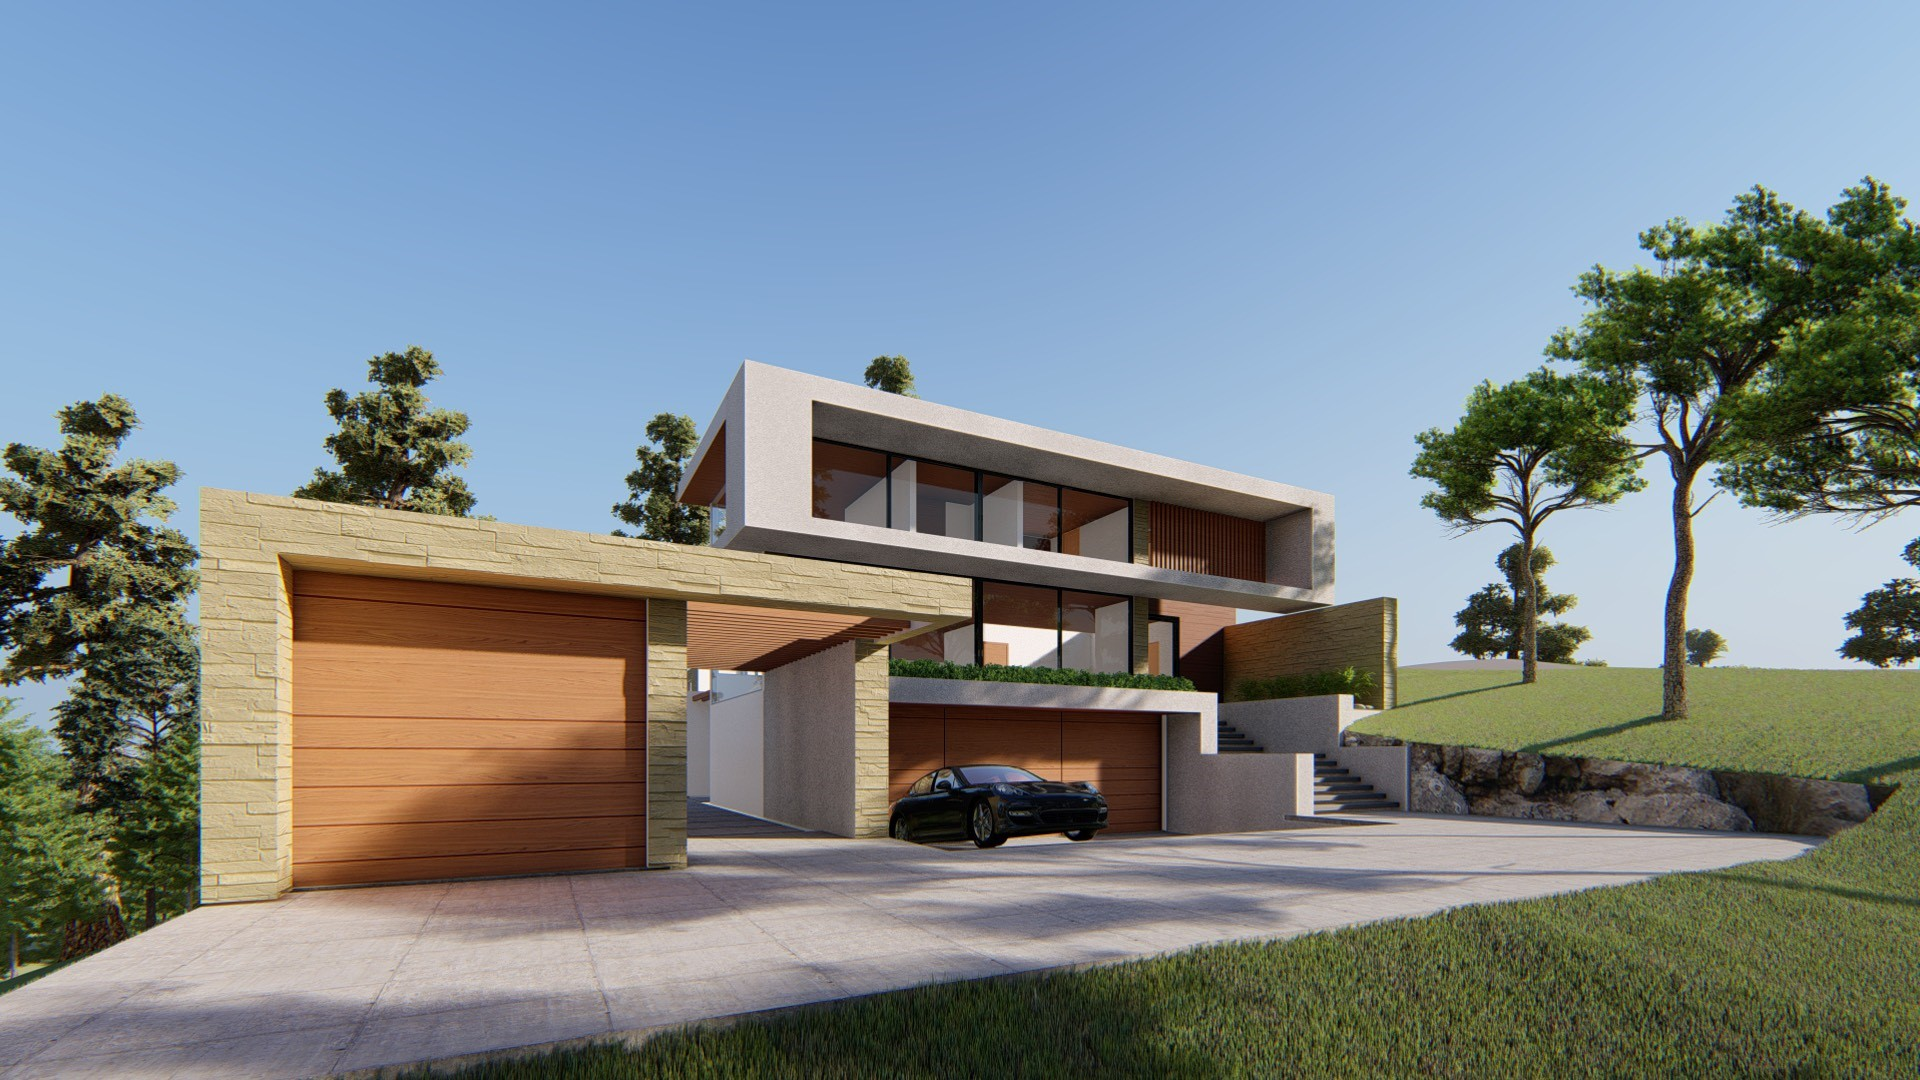 Front View Building Design, Los altos, Best Exterior Design, Los altos hills, California, San Francisco